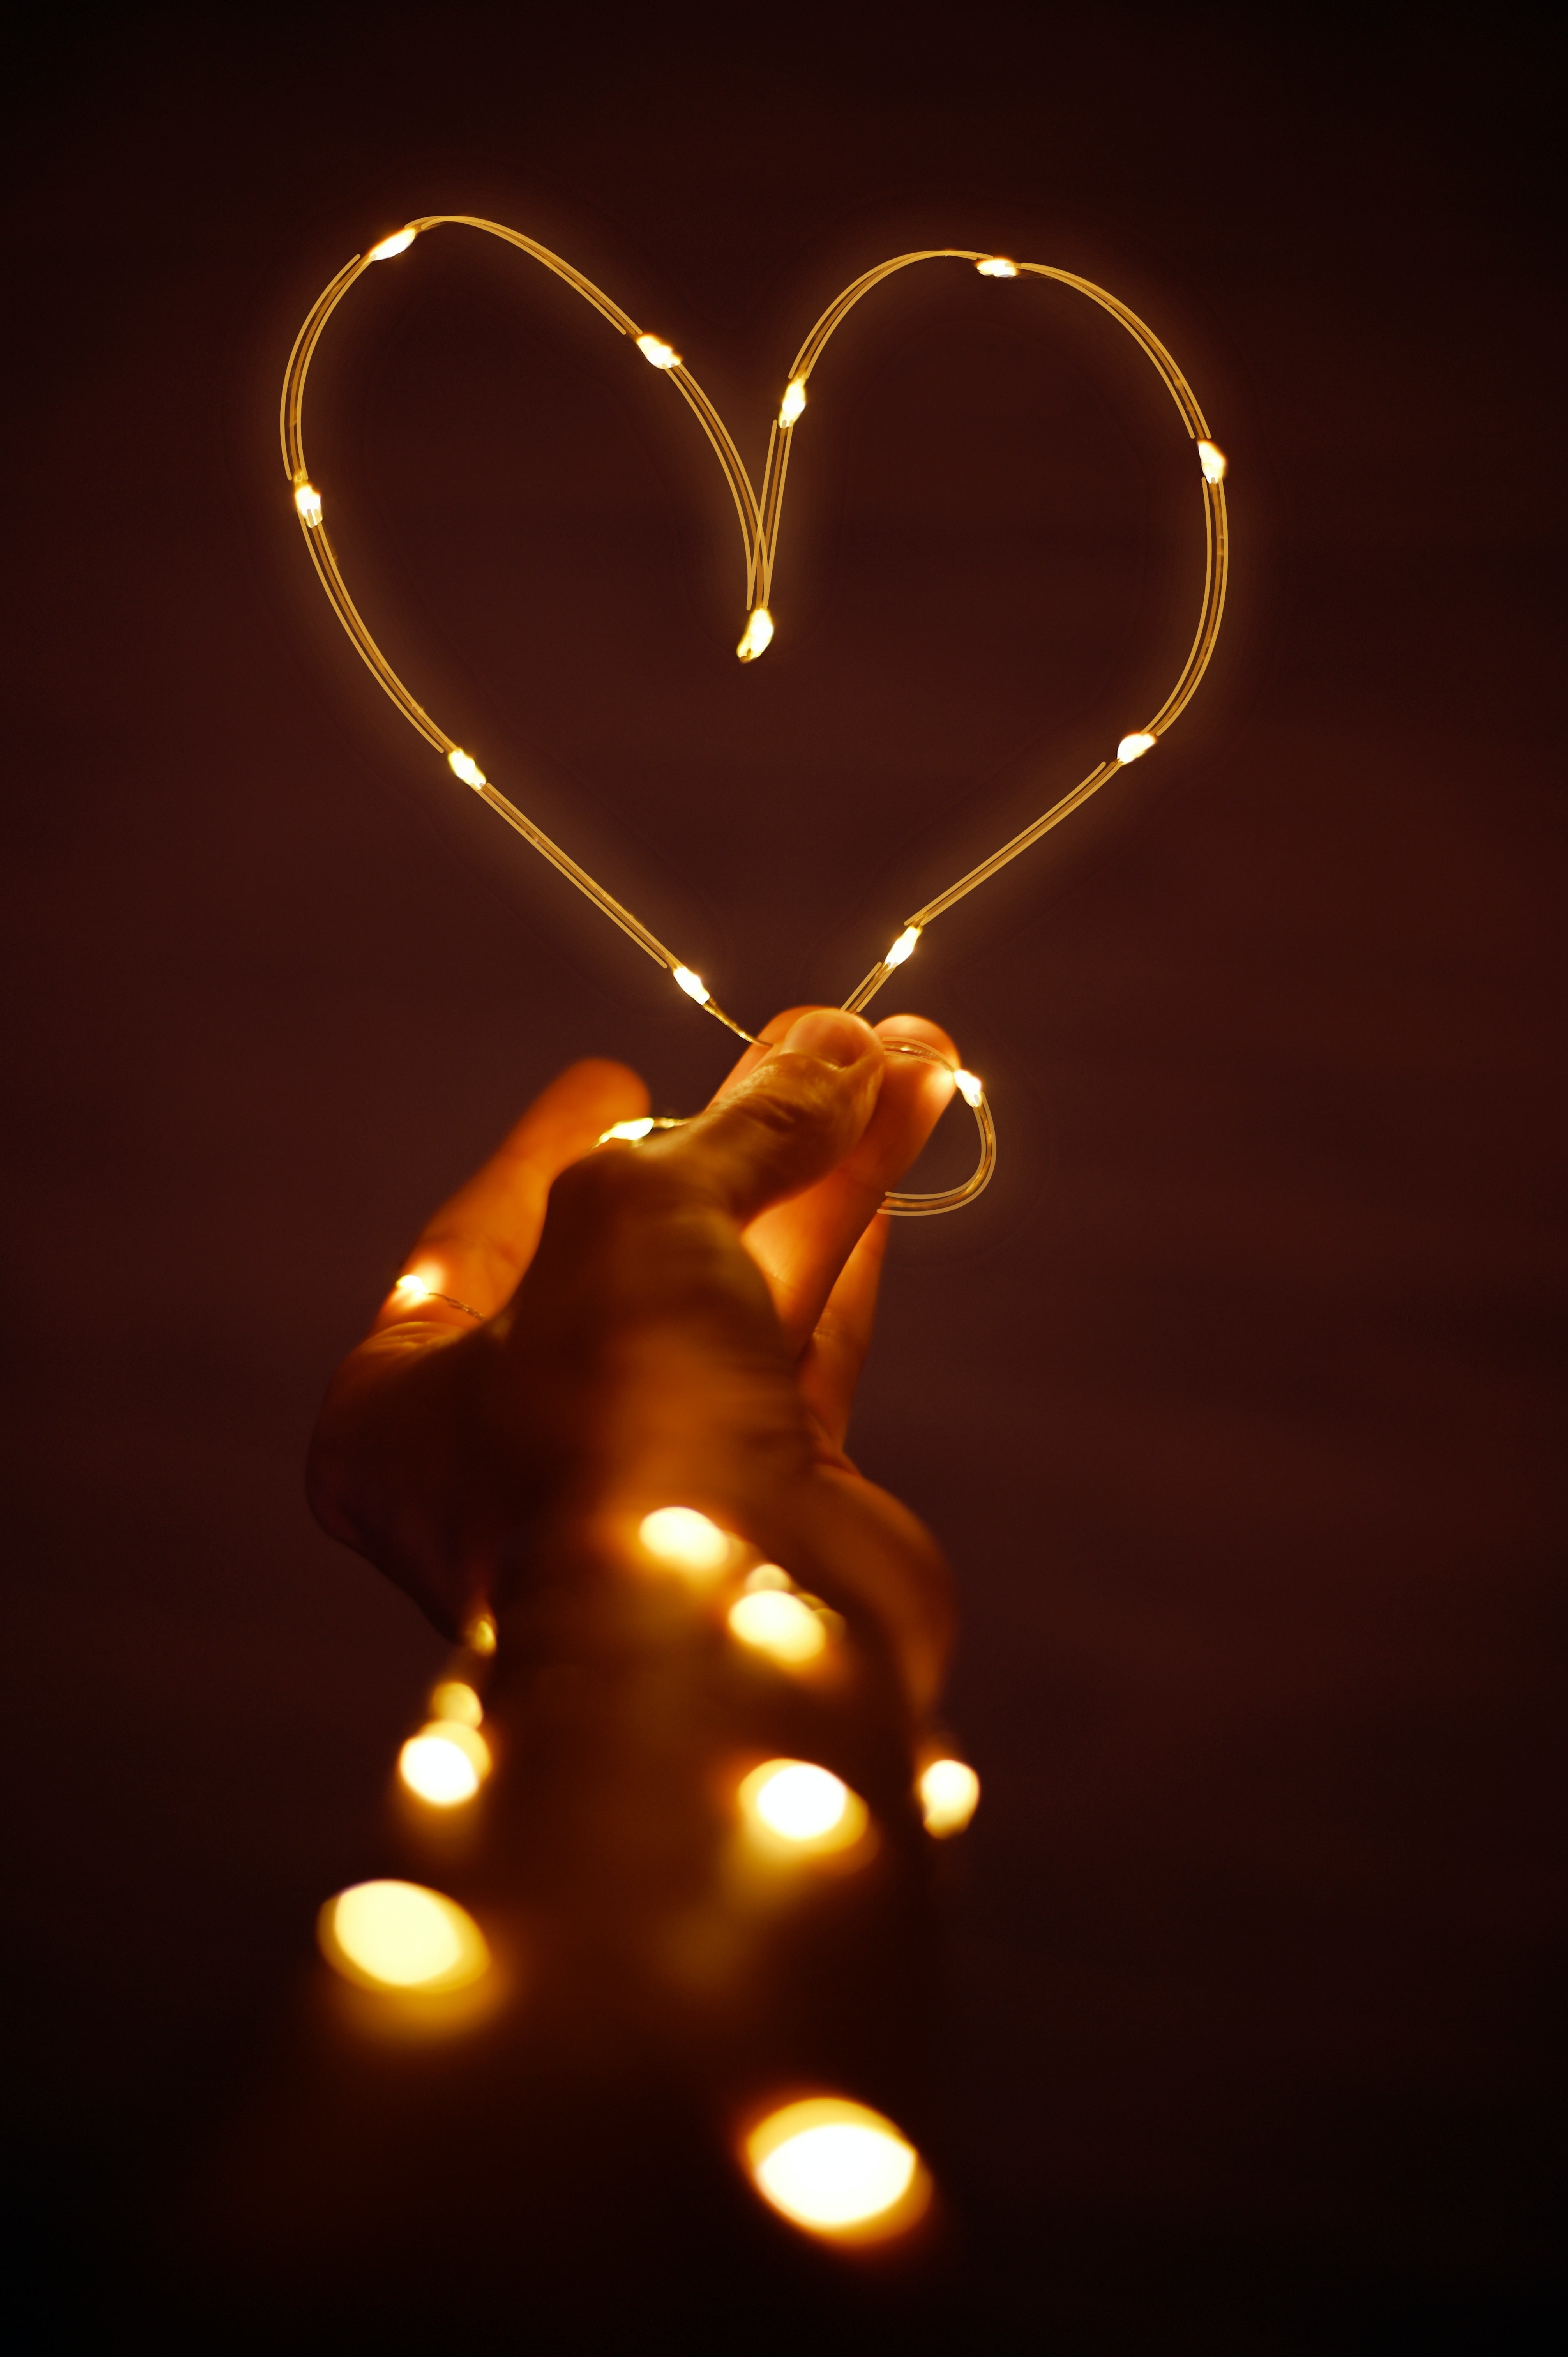 heart in lights expat away from family at christmas